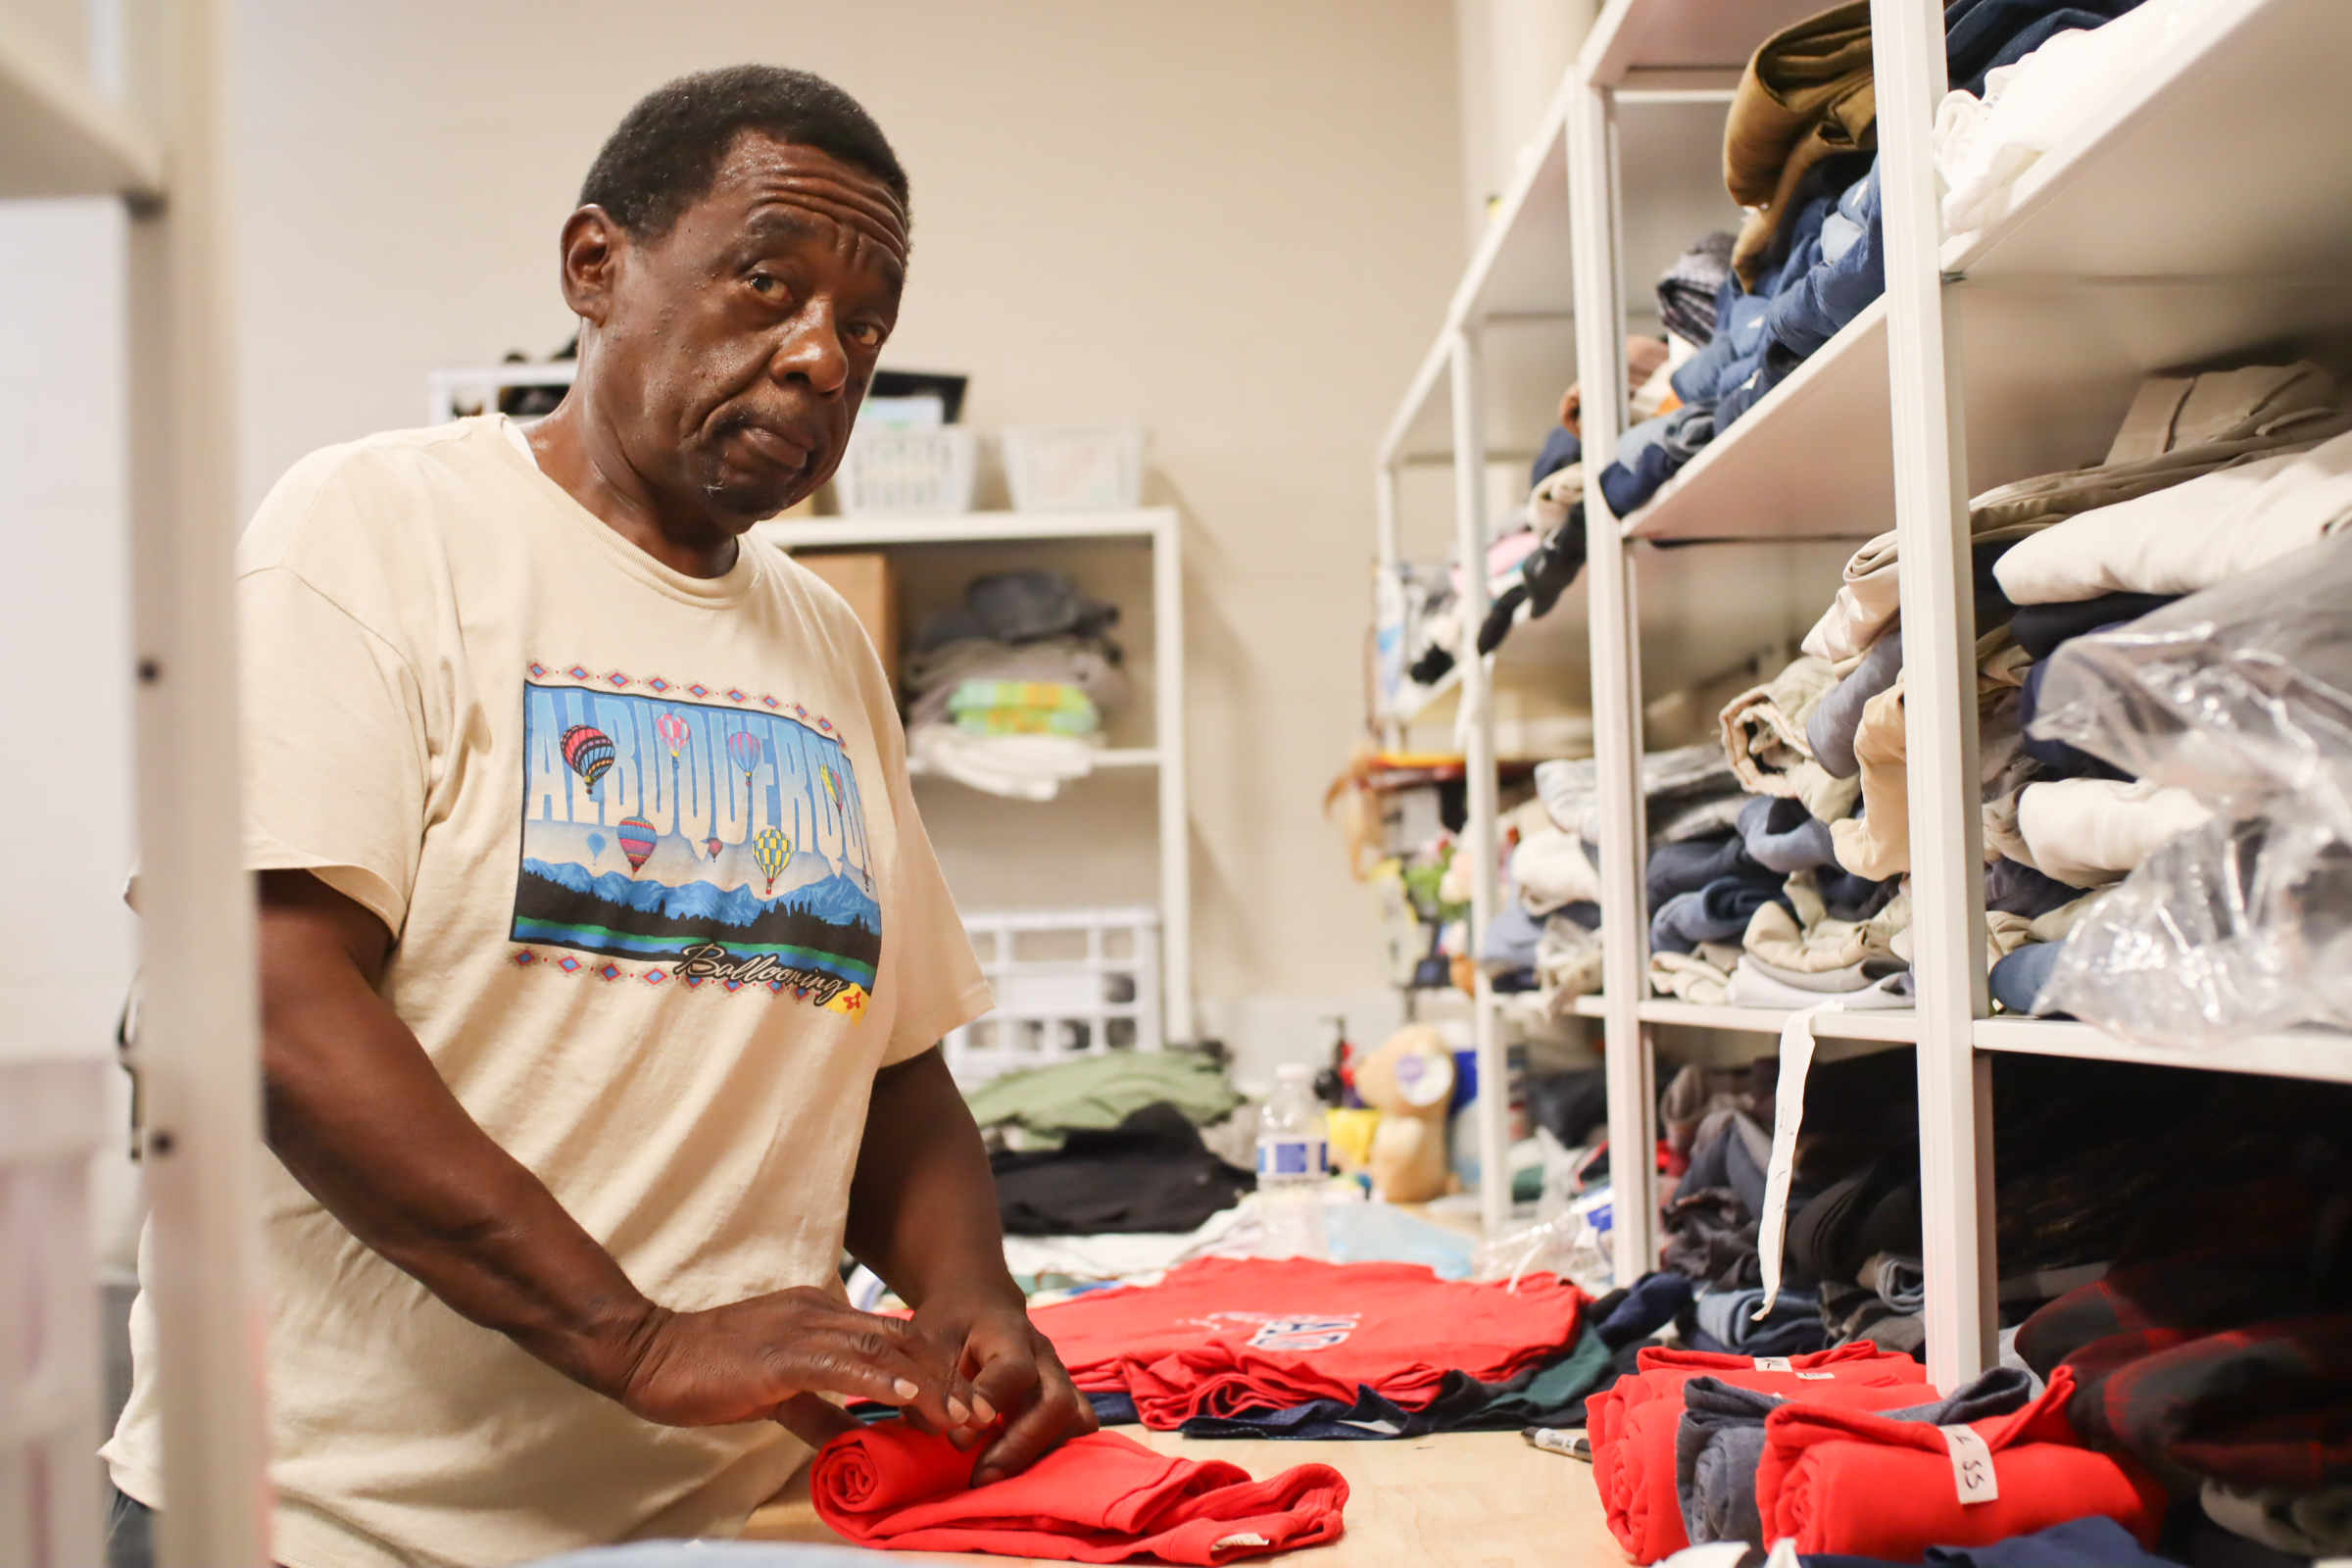 Resource Center volunteer Brian Lynch folds and sorts incoming items before they are distributed to guests.